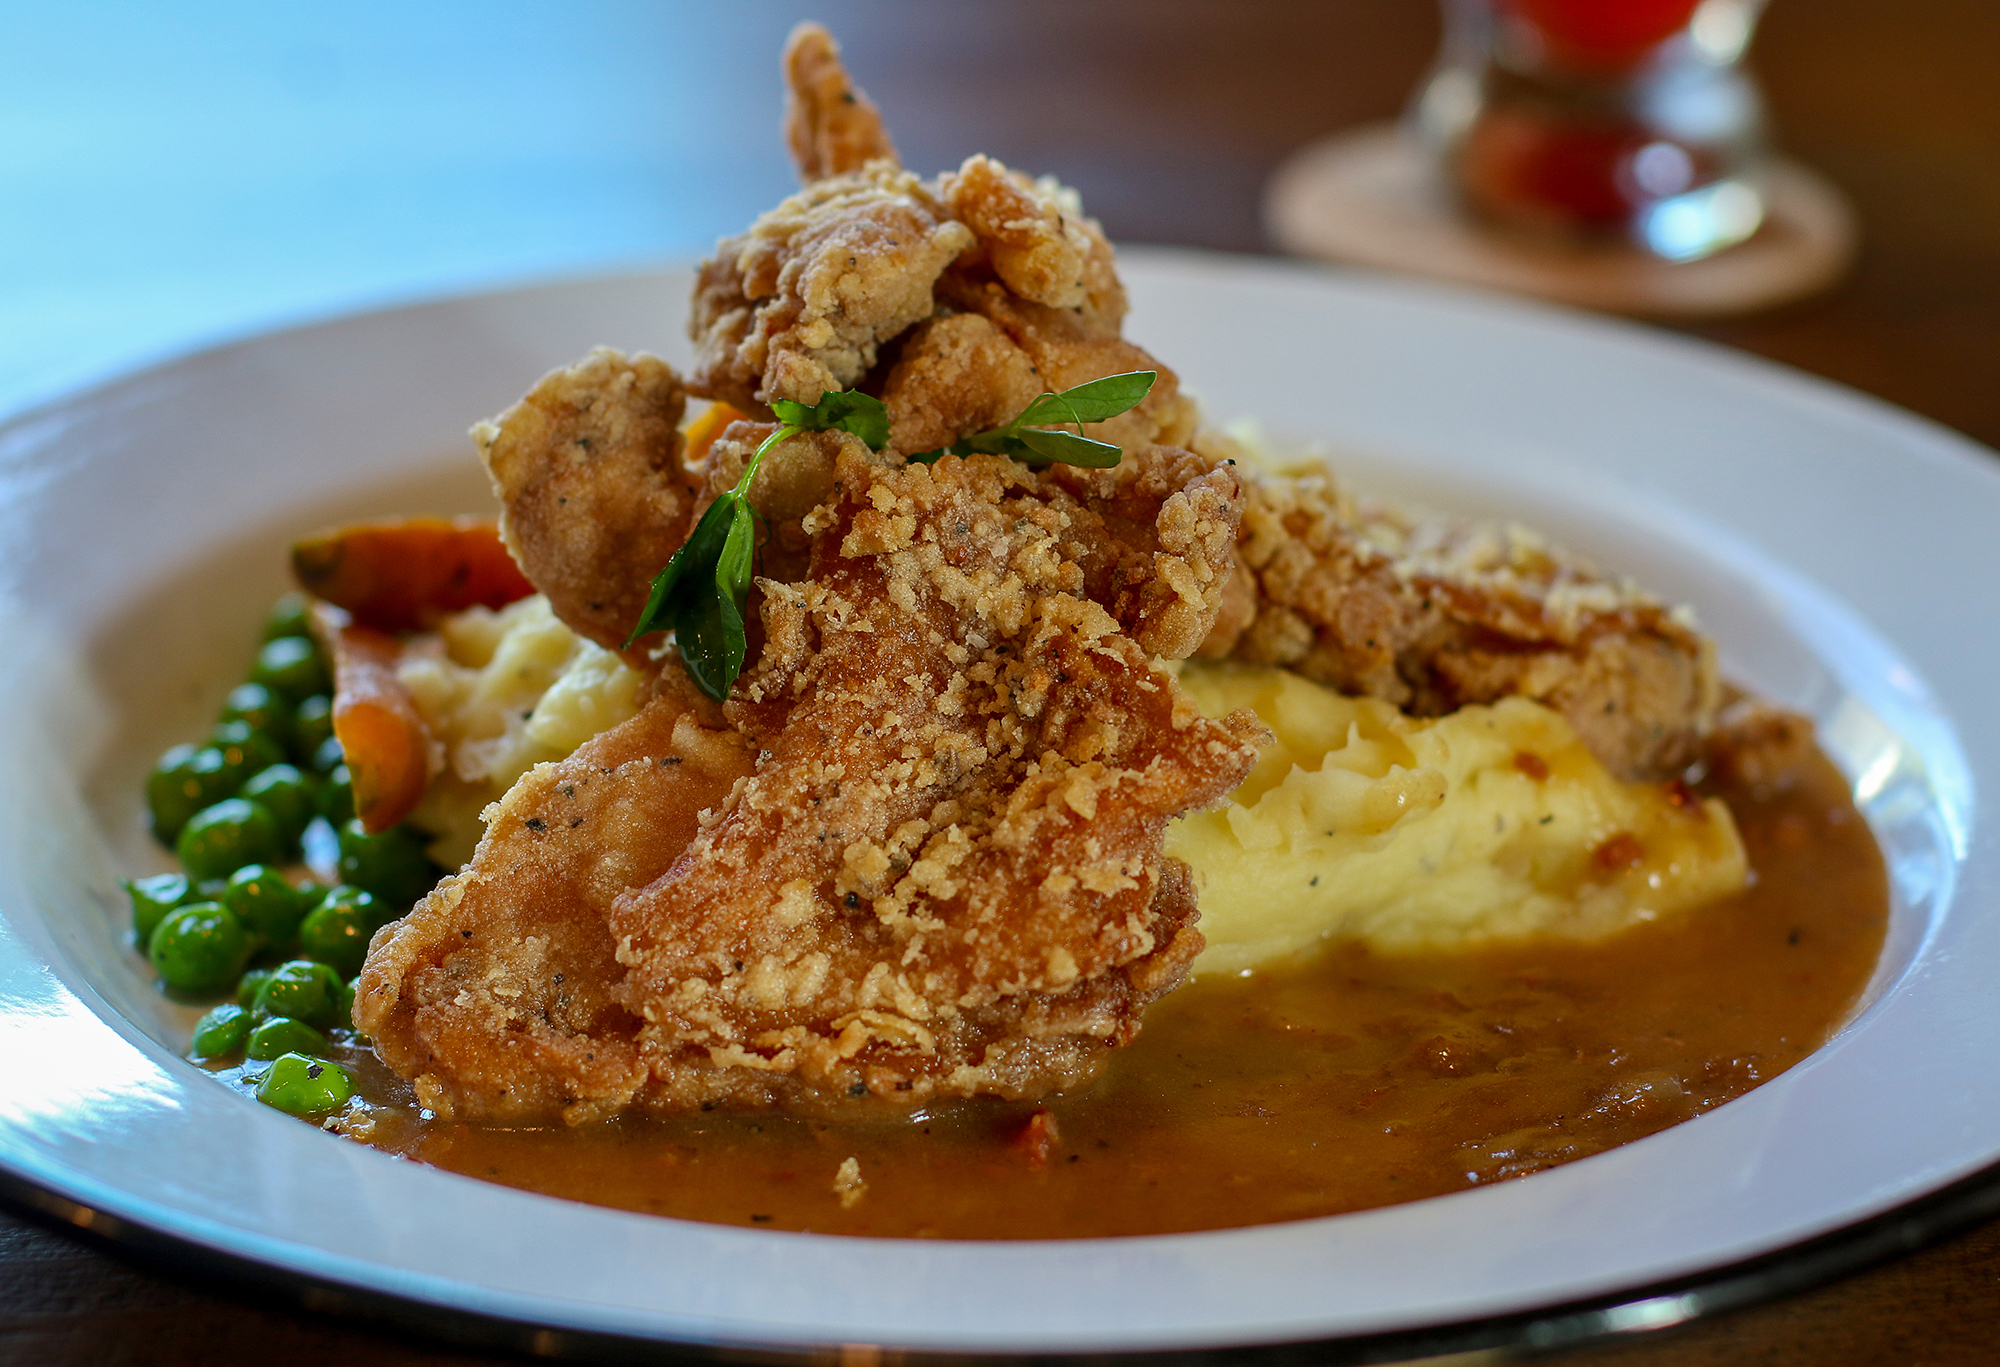 Fried chicken with mashed Yukons, peas and carrots at Tips Roadside in Kenwood. Heather Irwin/PD